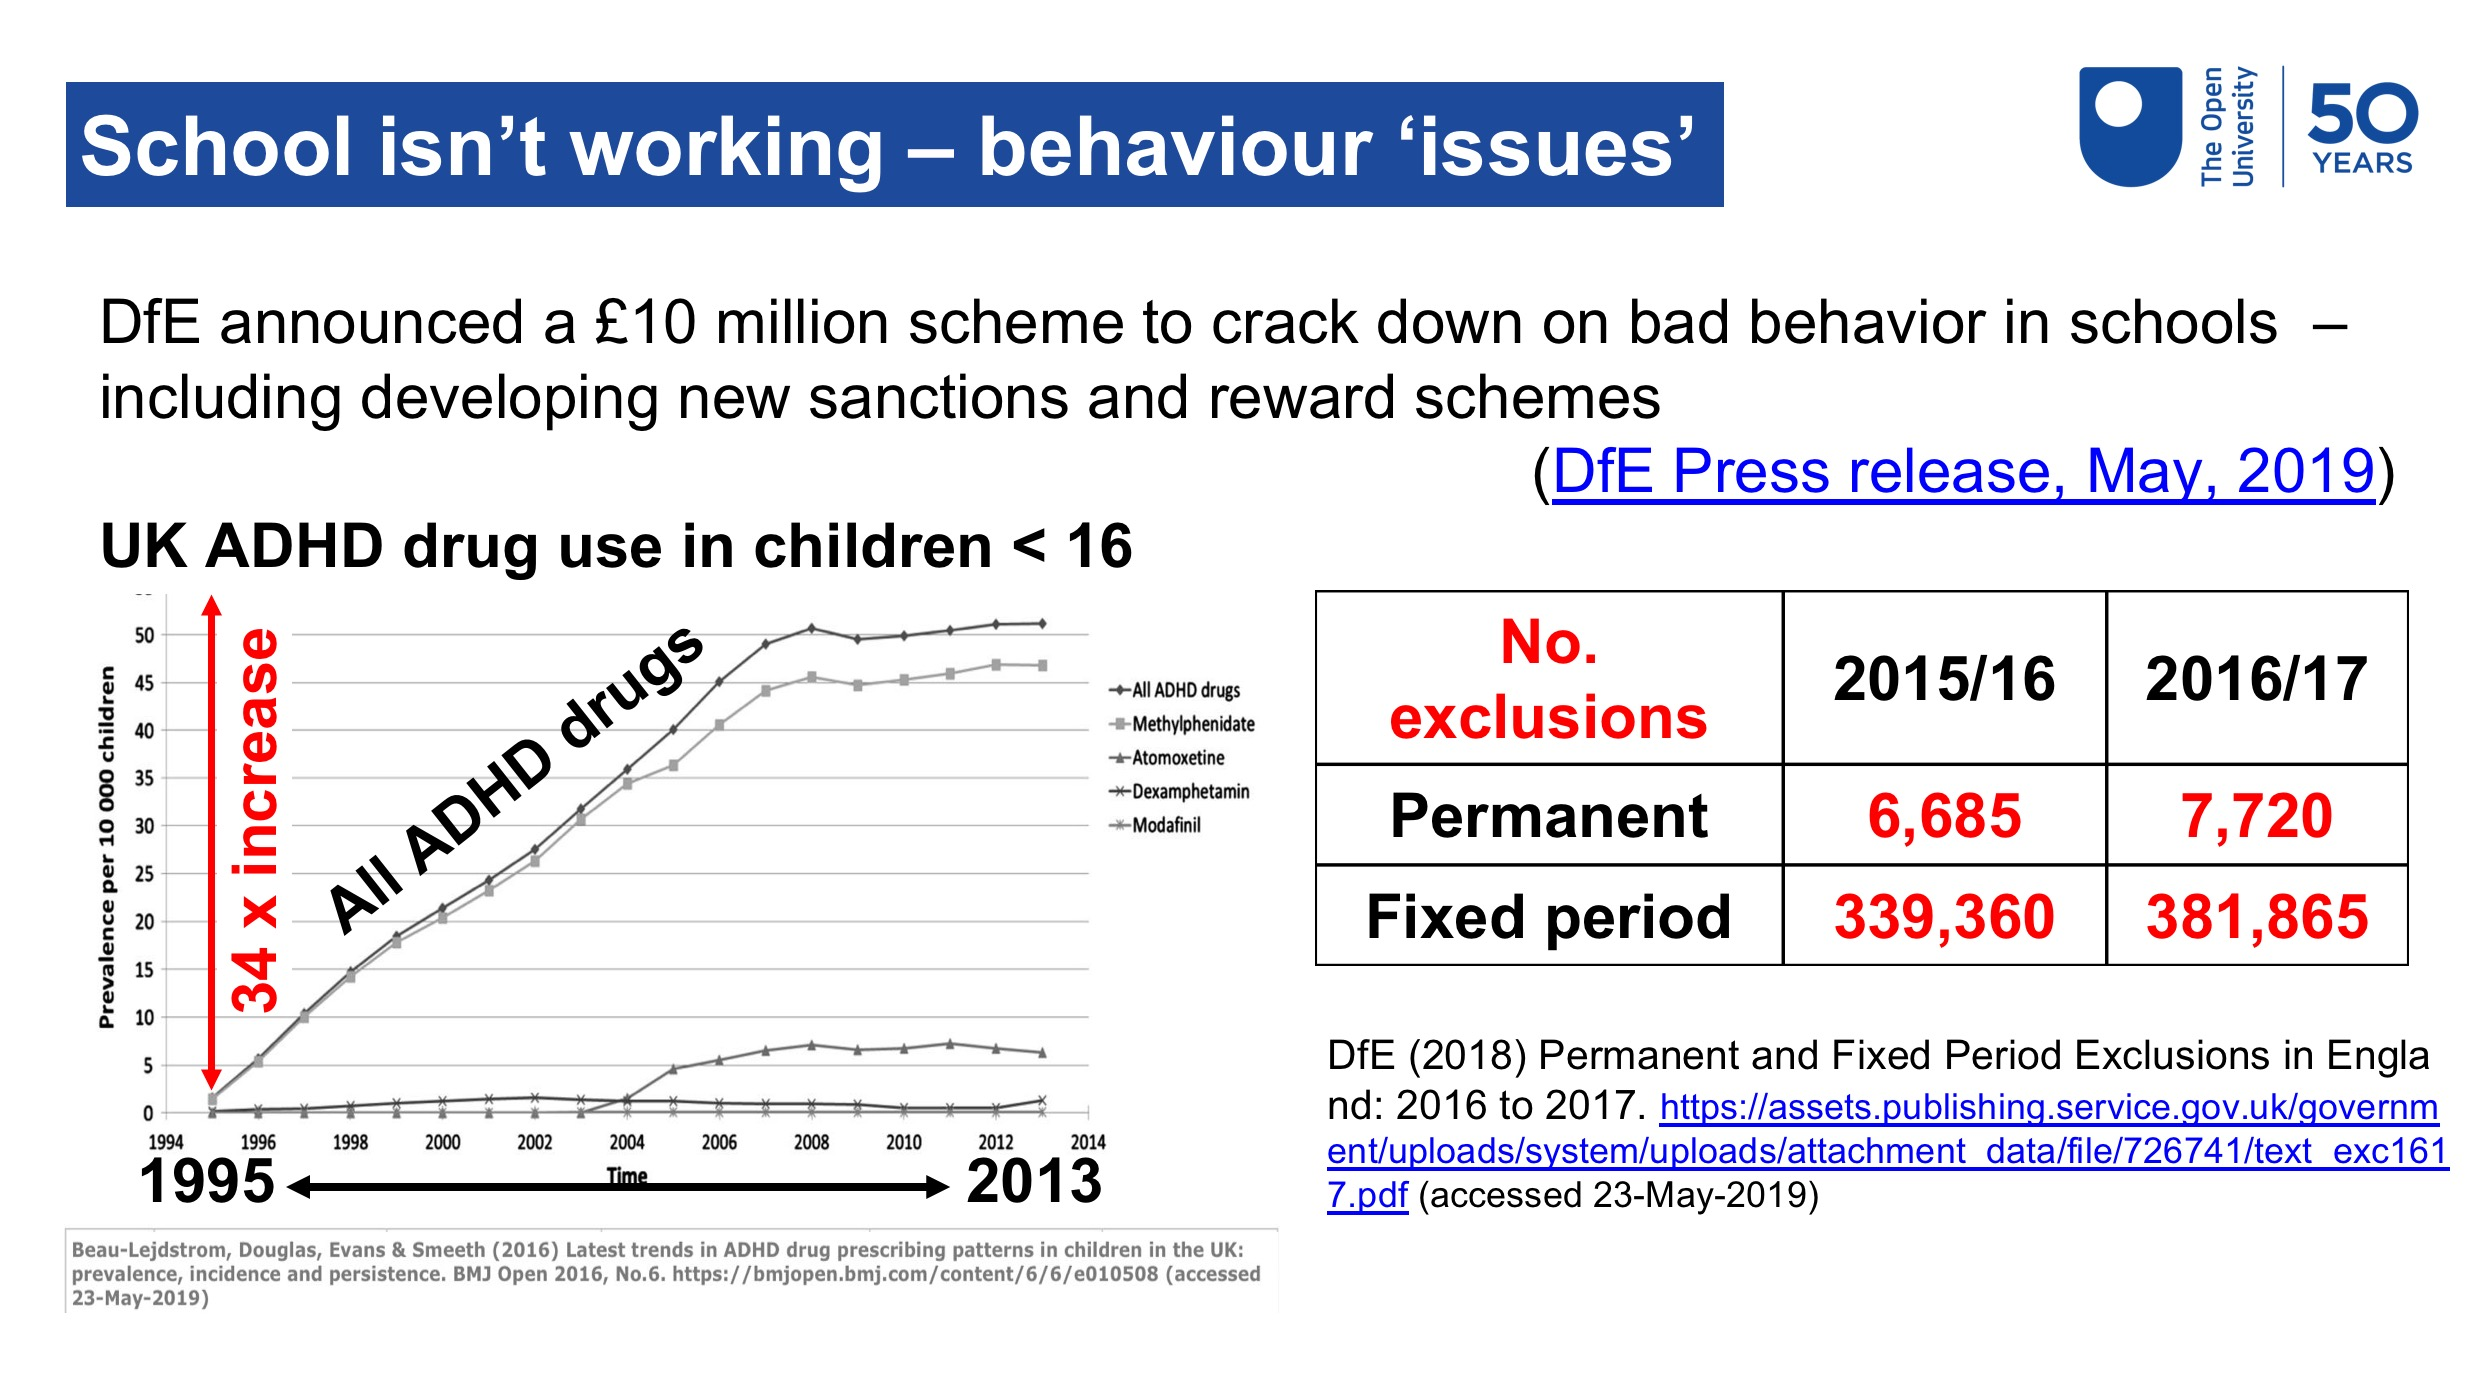 Evidence of increasing 'behaviour' issues in schools